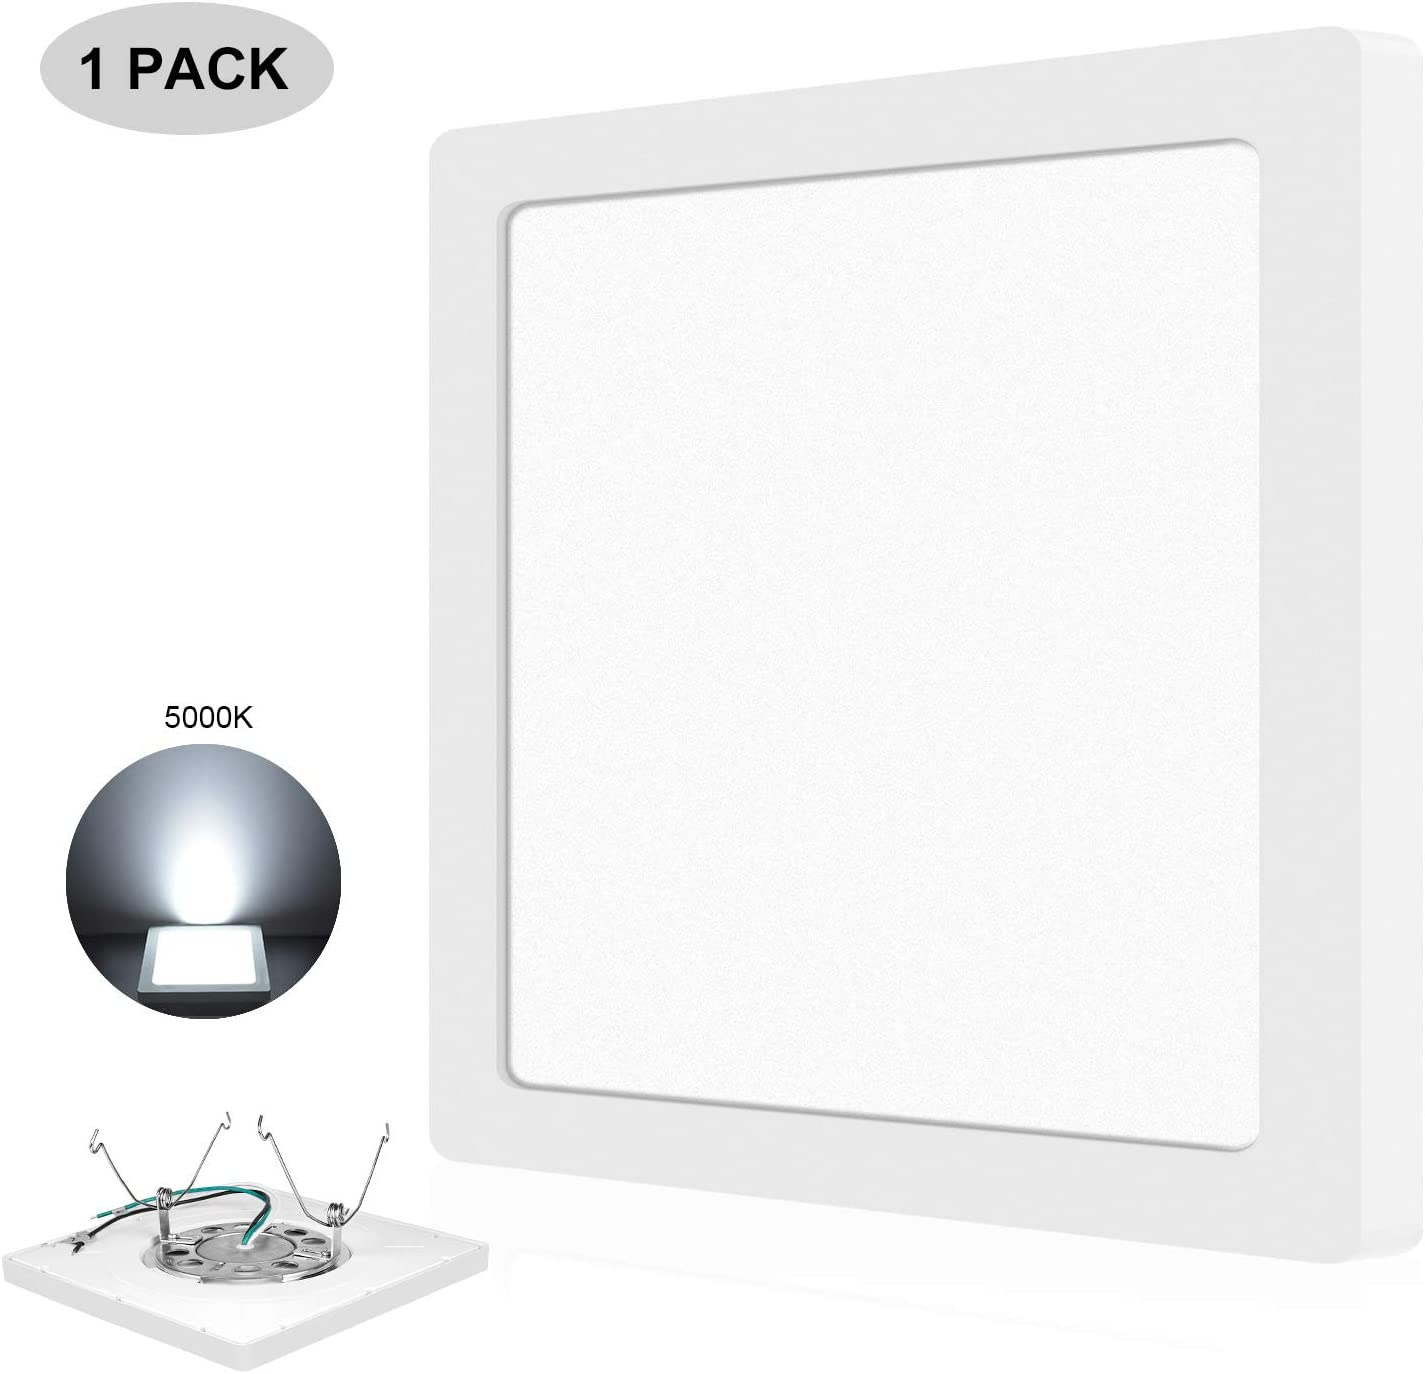 AVANLO 1 Pack 12'' 24W(150W Equivalent) LED Ceiling Light Fixture, Square Light Dimmable, 5000K 1680lm 120V, 3 Easy Installation, for Surface Mount, 3.5-4'' Junction Box, 5-6'' Recessed Can